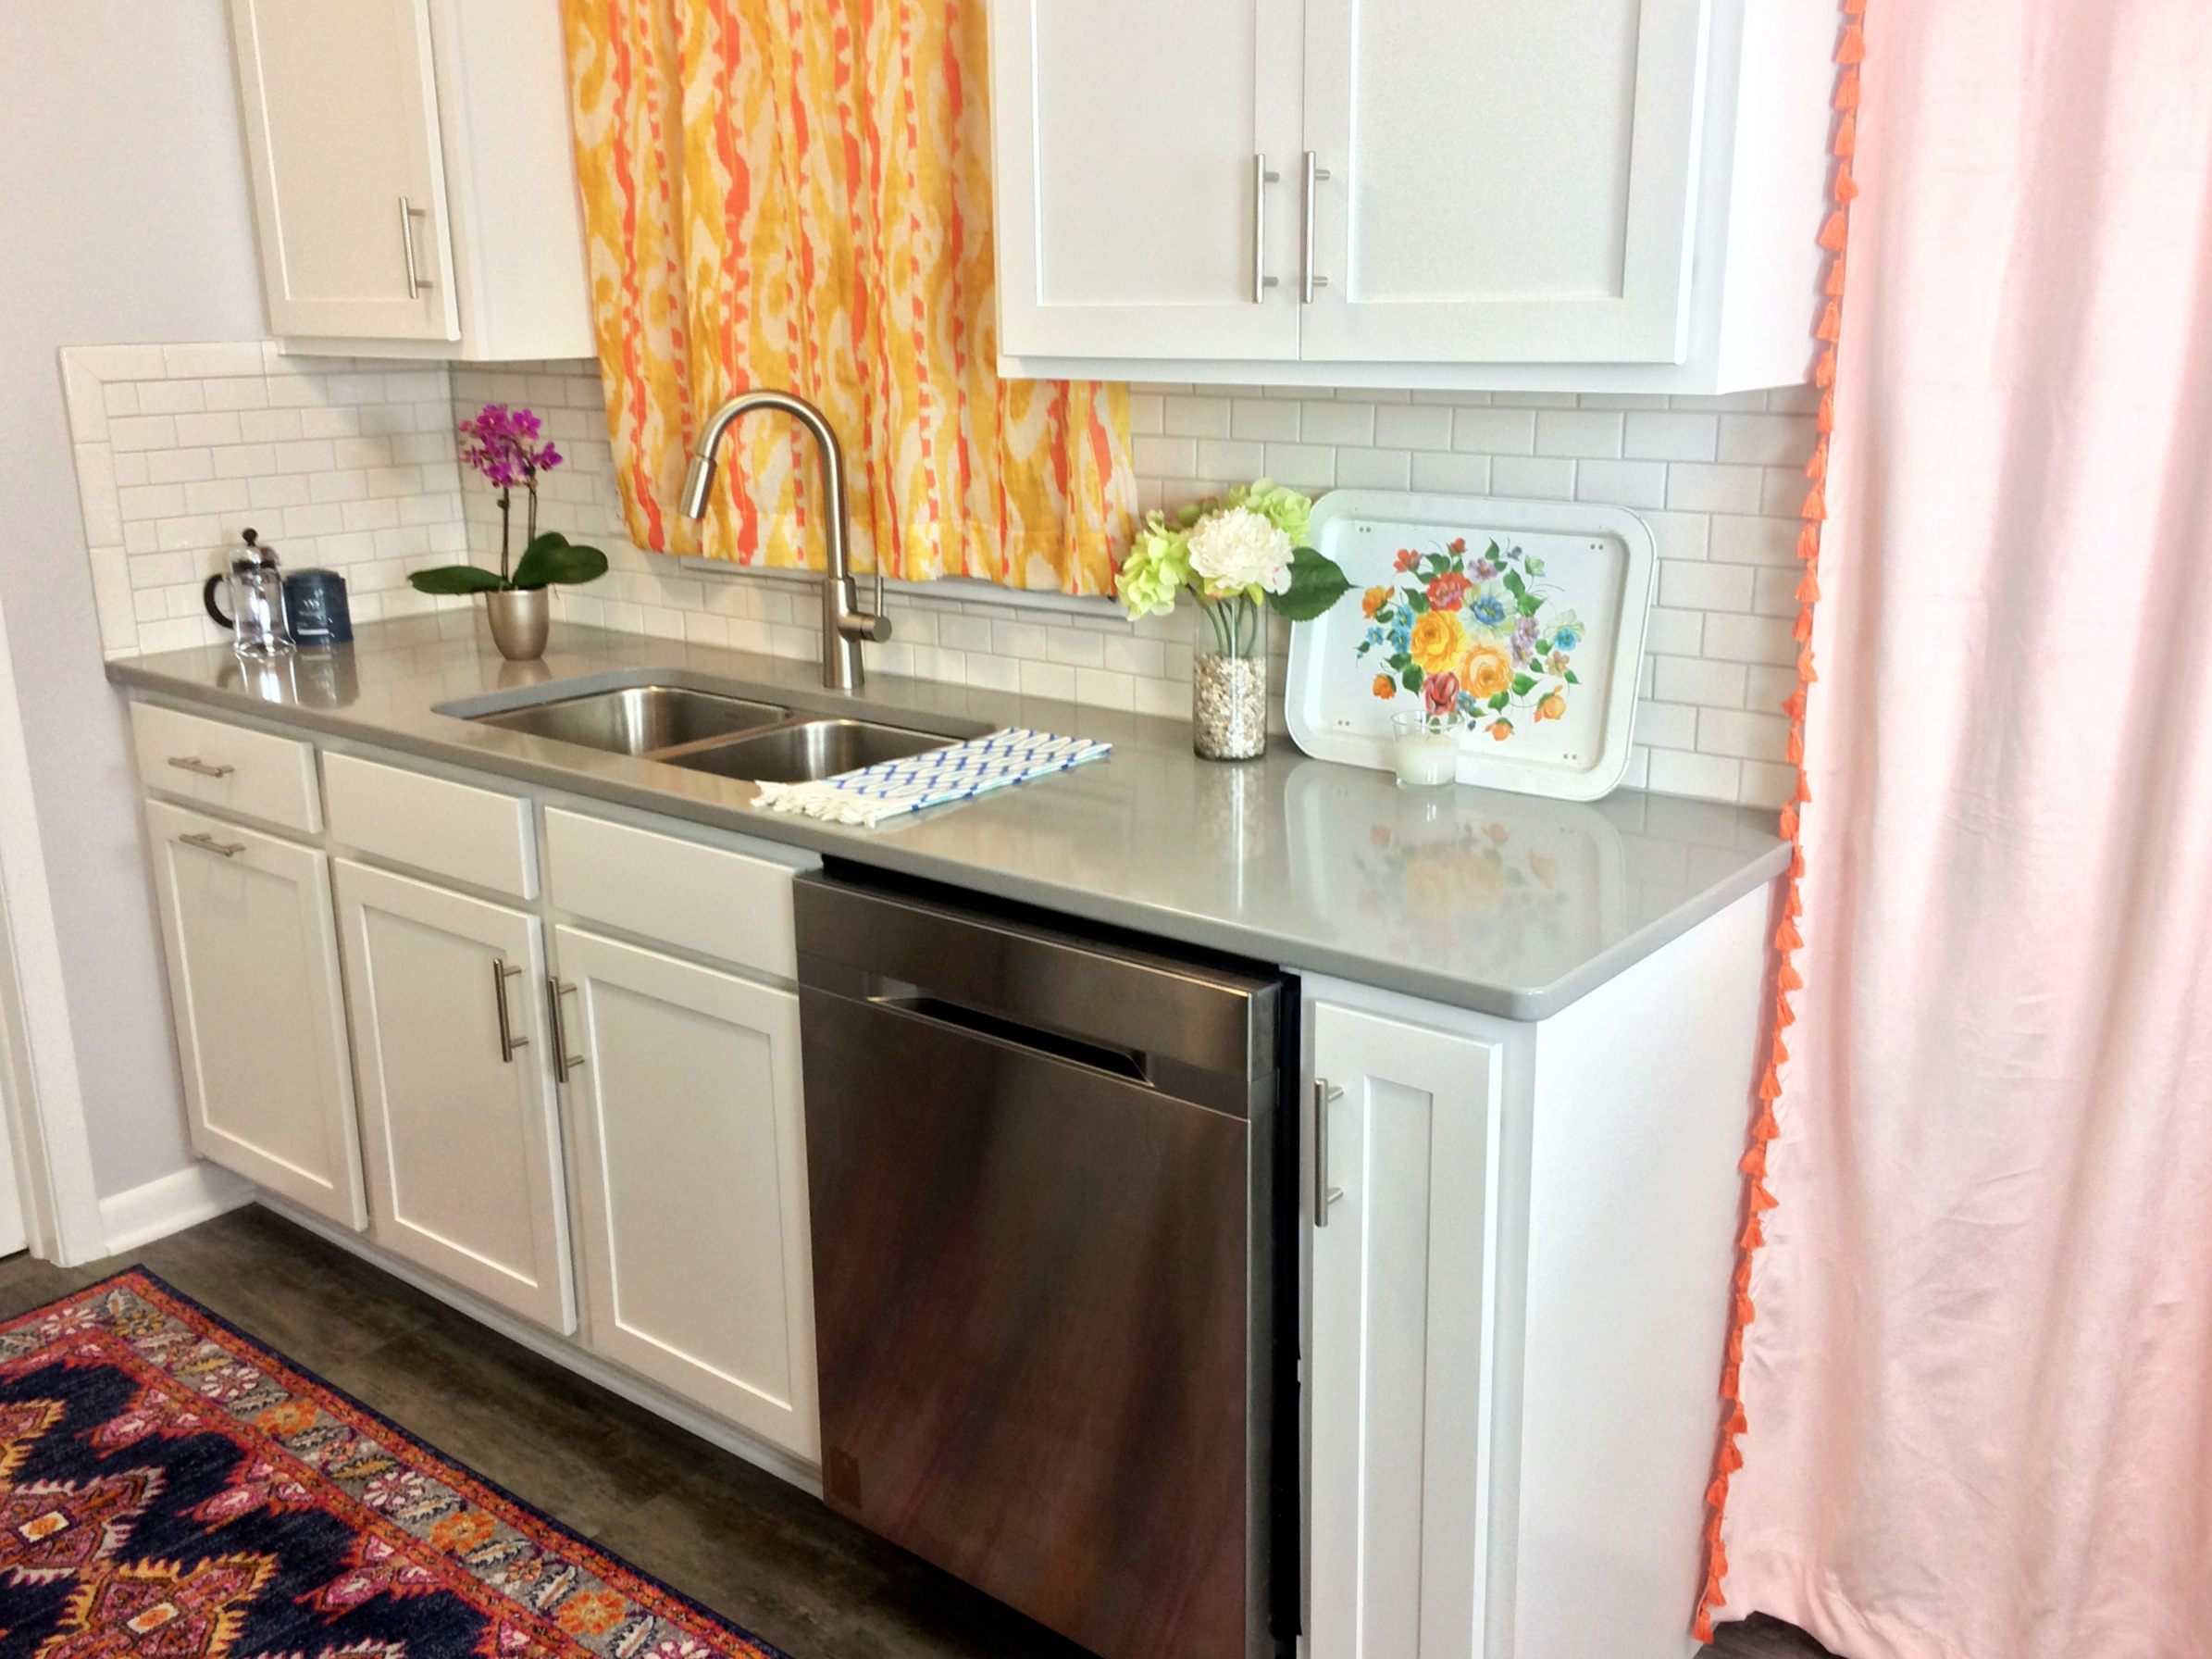 I love the pop of color these curtains give an otherwise stark and white kitchen.